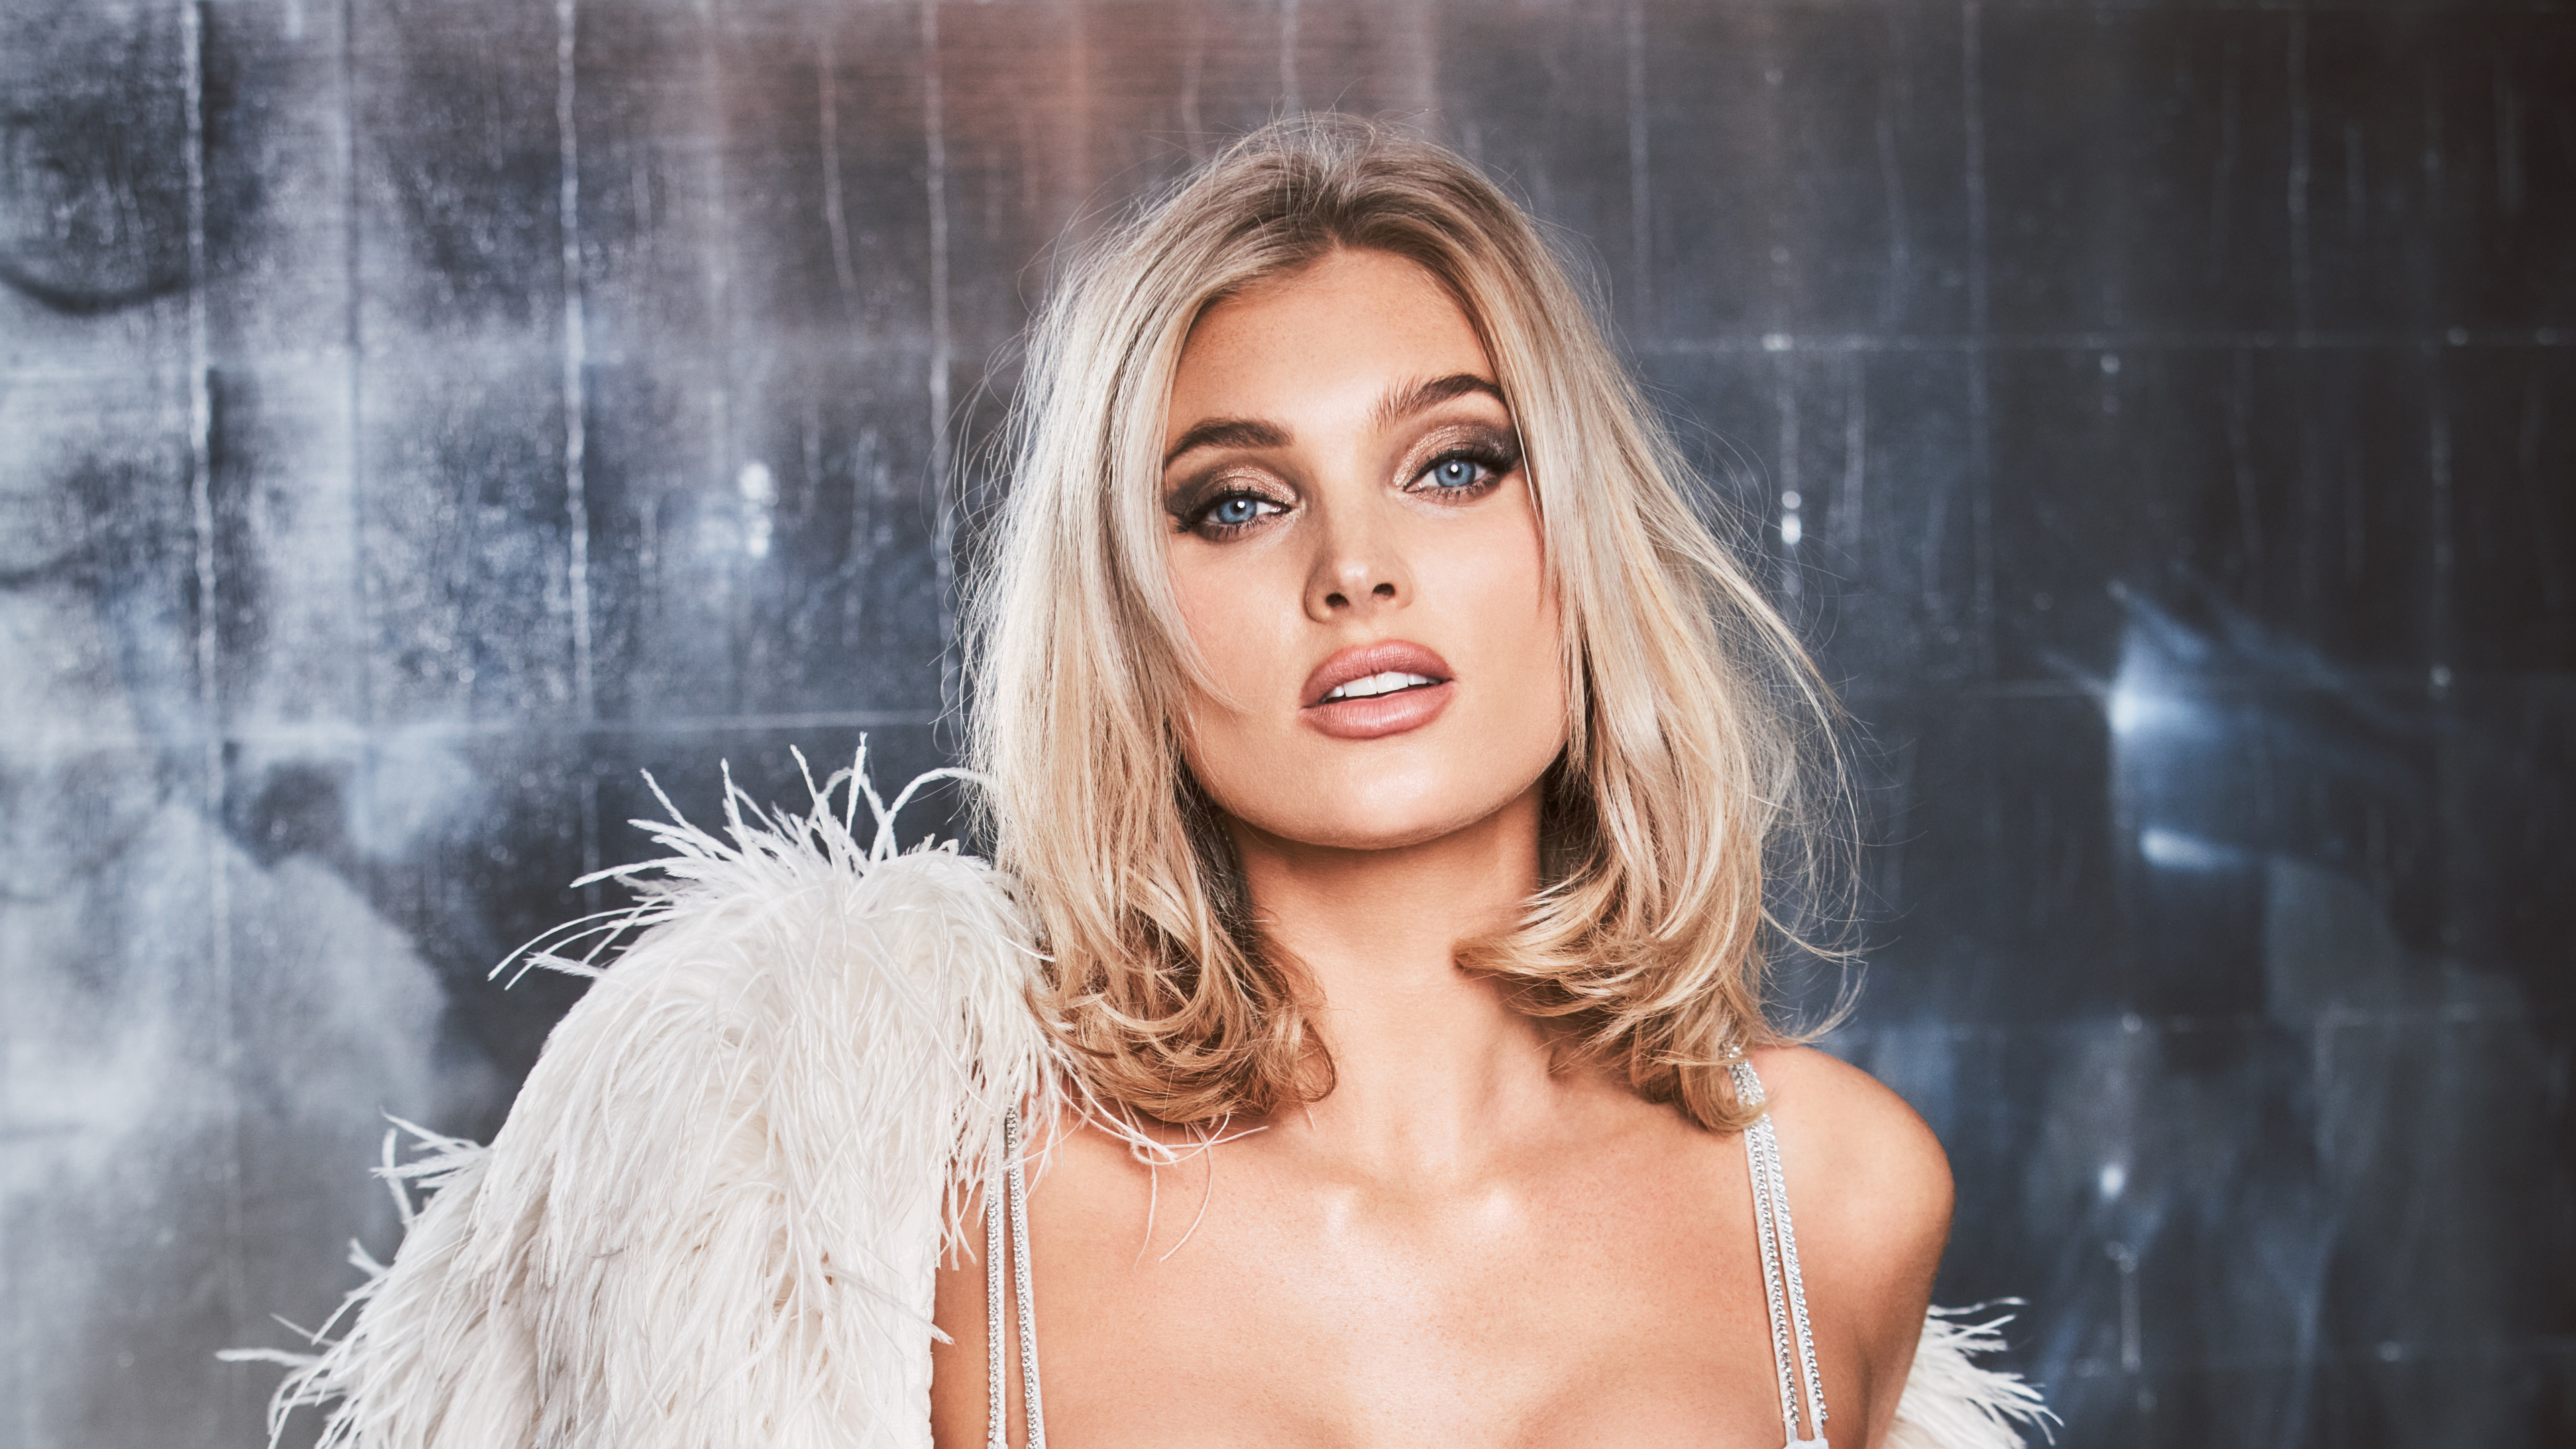 elsa hosk new 5k 1543104566 - Elsa Hosk New 5k - model wallpapers, hd-wallpapers, girls wallpapers, elsa hosk wallpapers, celebrities wallpapers, 5k wallpapers, 4k-wallpapers